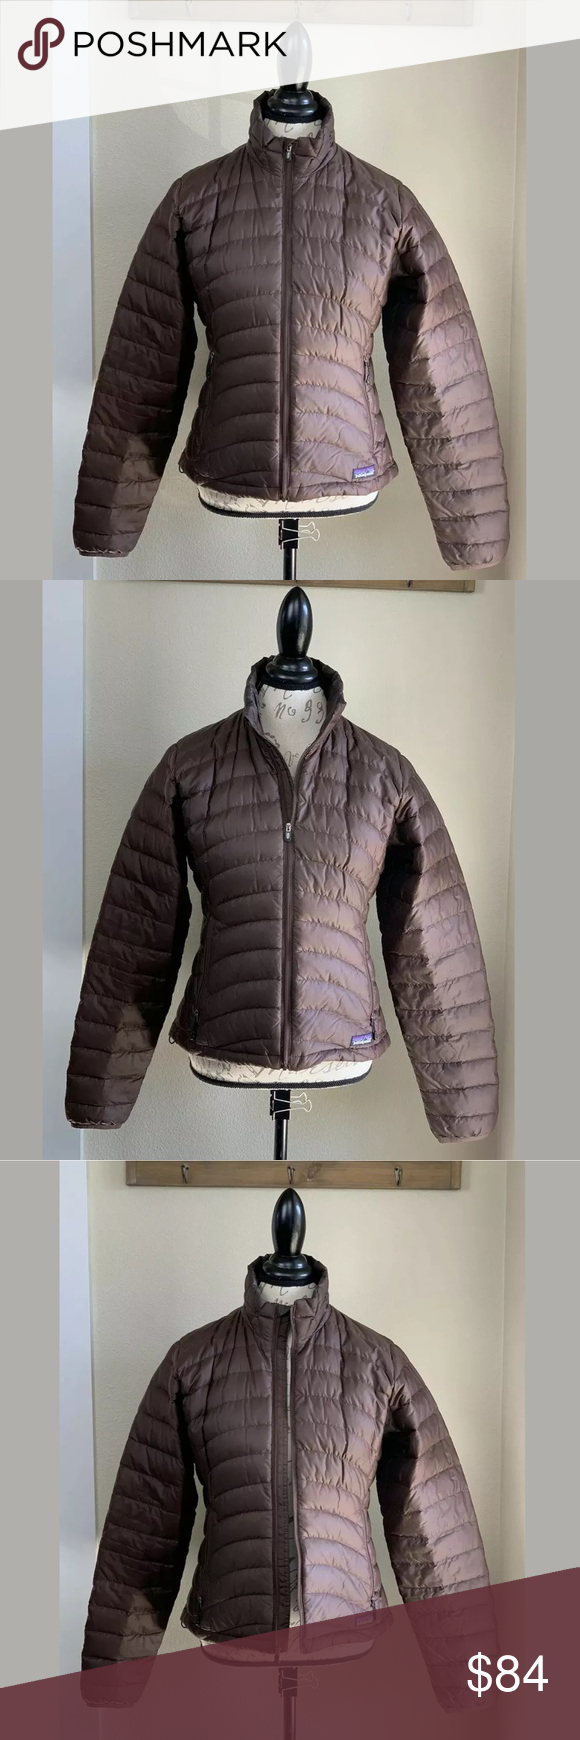 PATAGONIA Goose Down Puffer Jacket Coat Size Small Coats